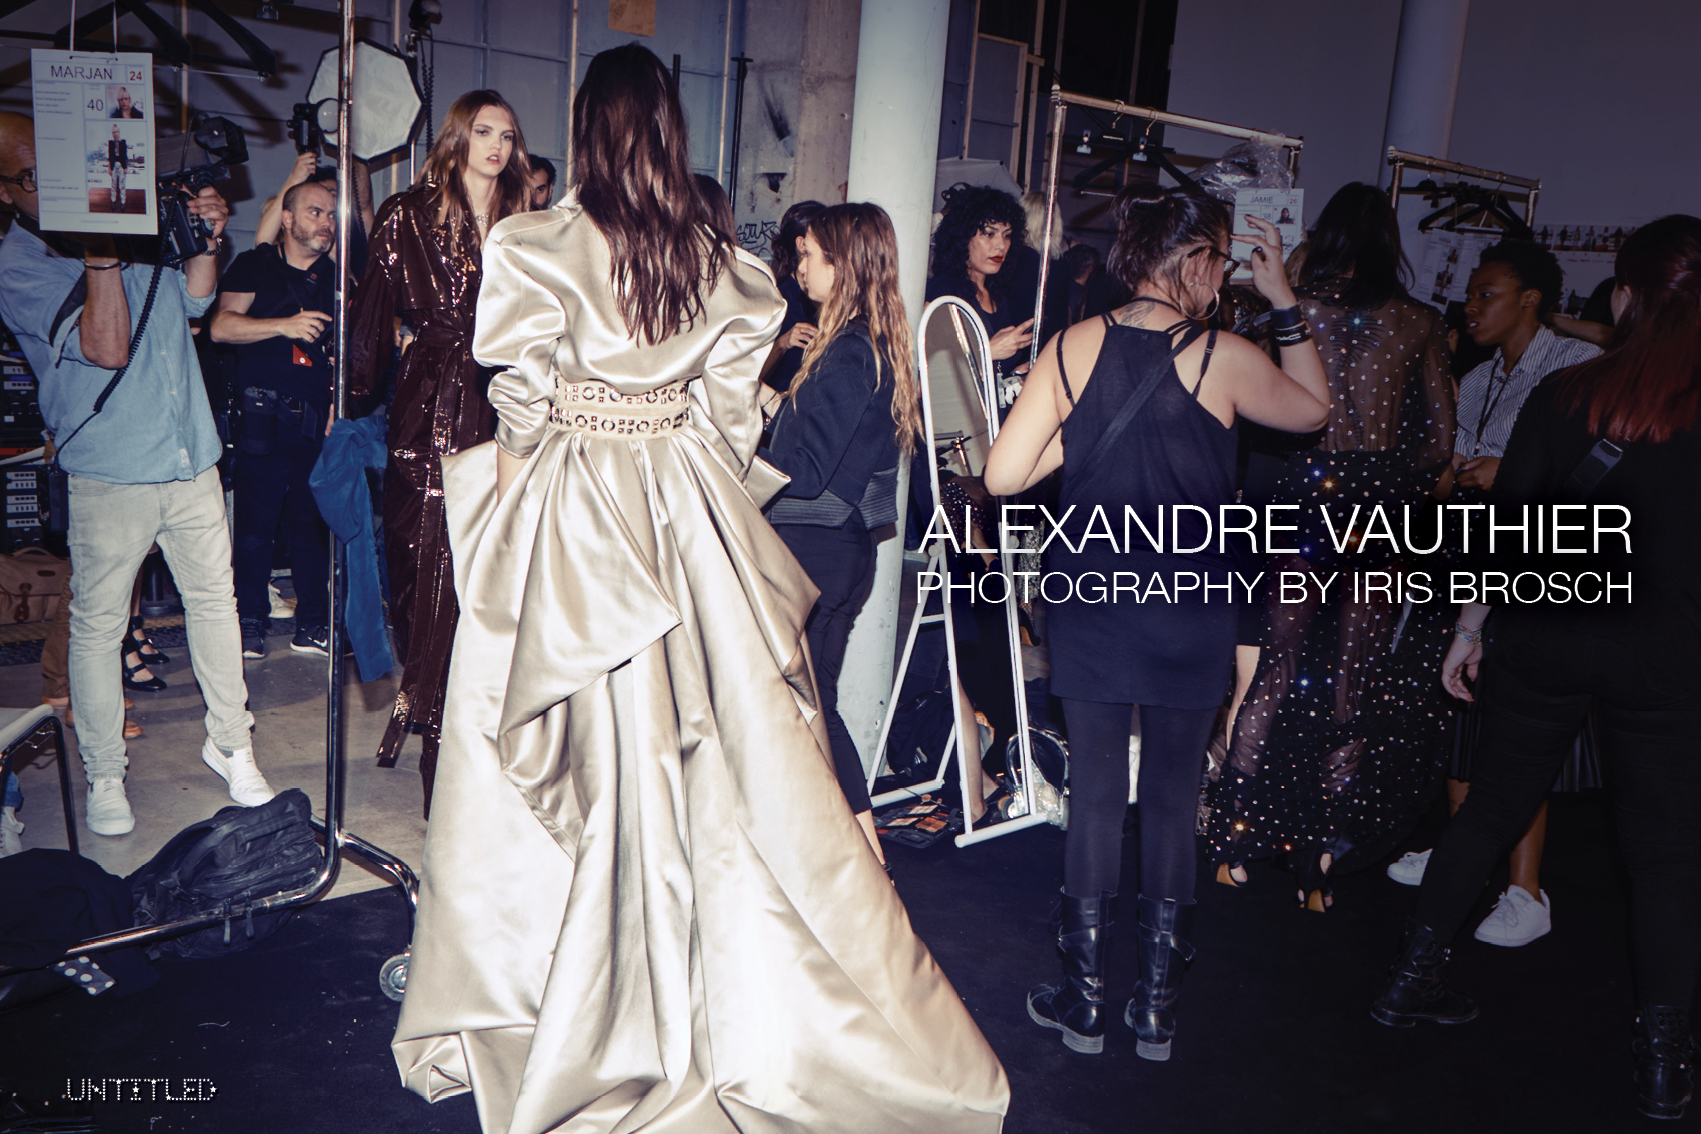 Alexandre Vauthier - Haute Couture - The Untiled Magazine - Photography by Iris Brosch